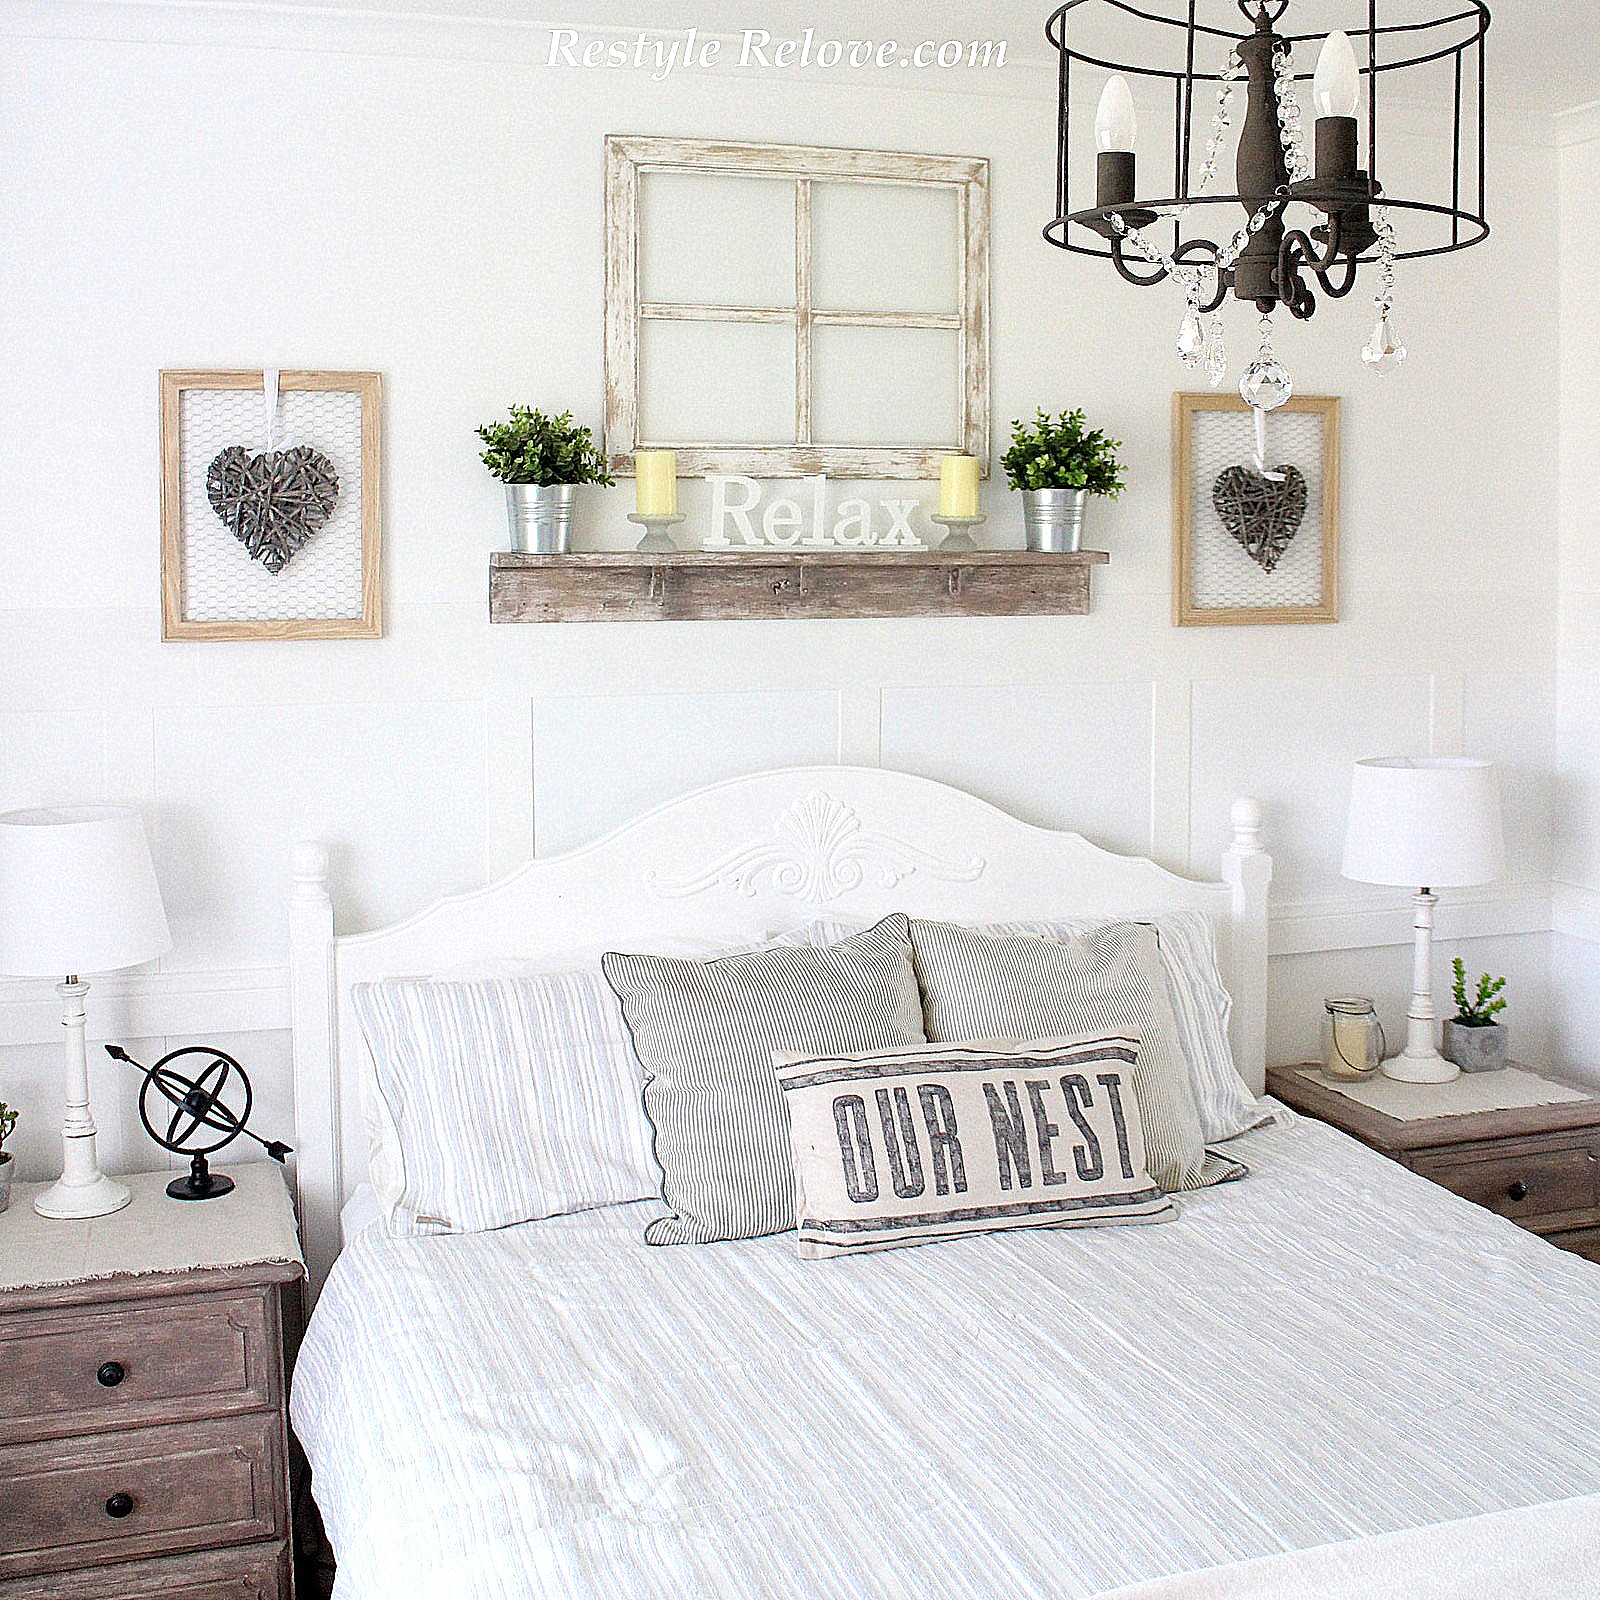 New Rustic Farmhouse Bedside Lamps in the Master Bedroom on Master Bedroom Farmhouse Bedroom Images  id=56778